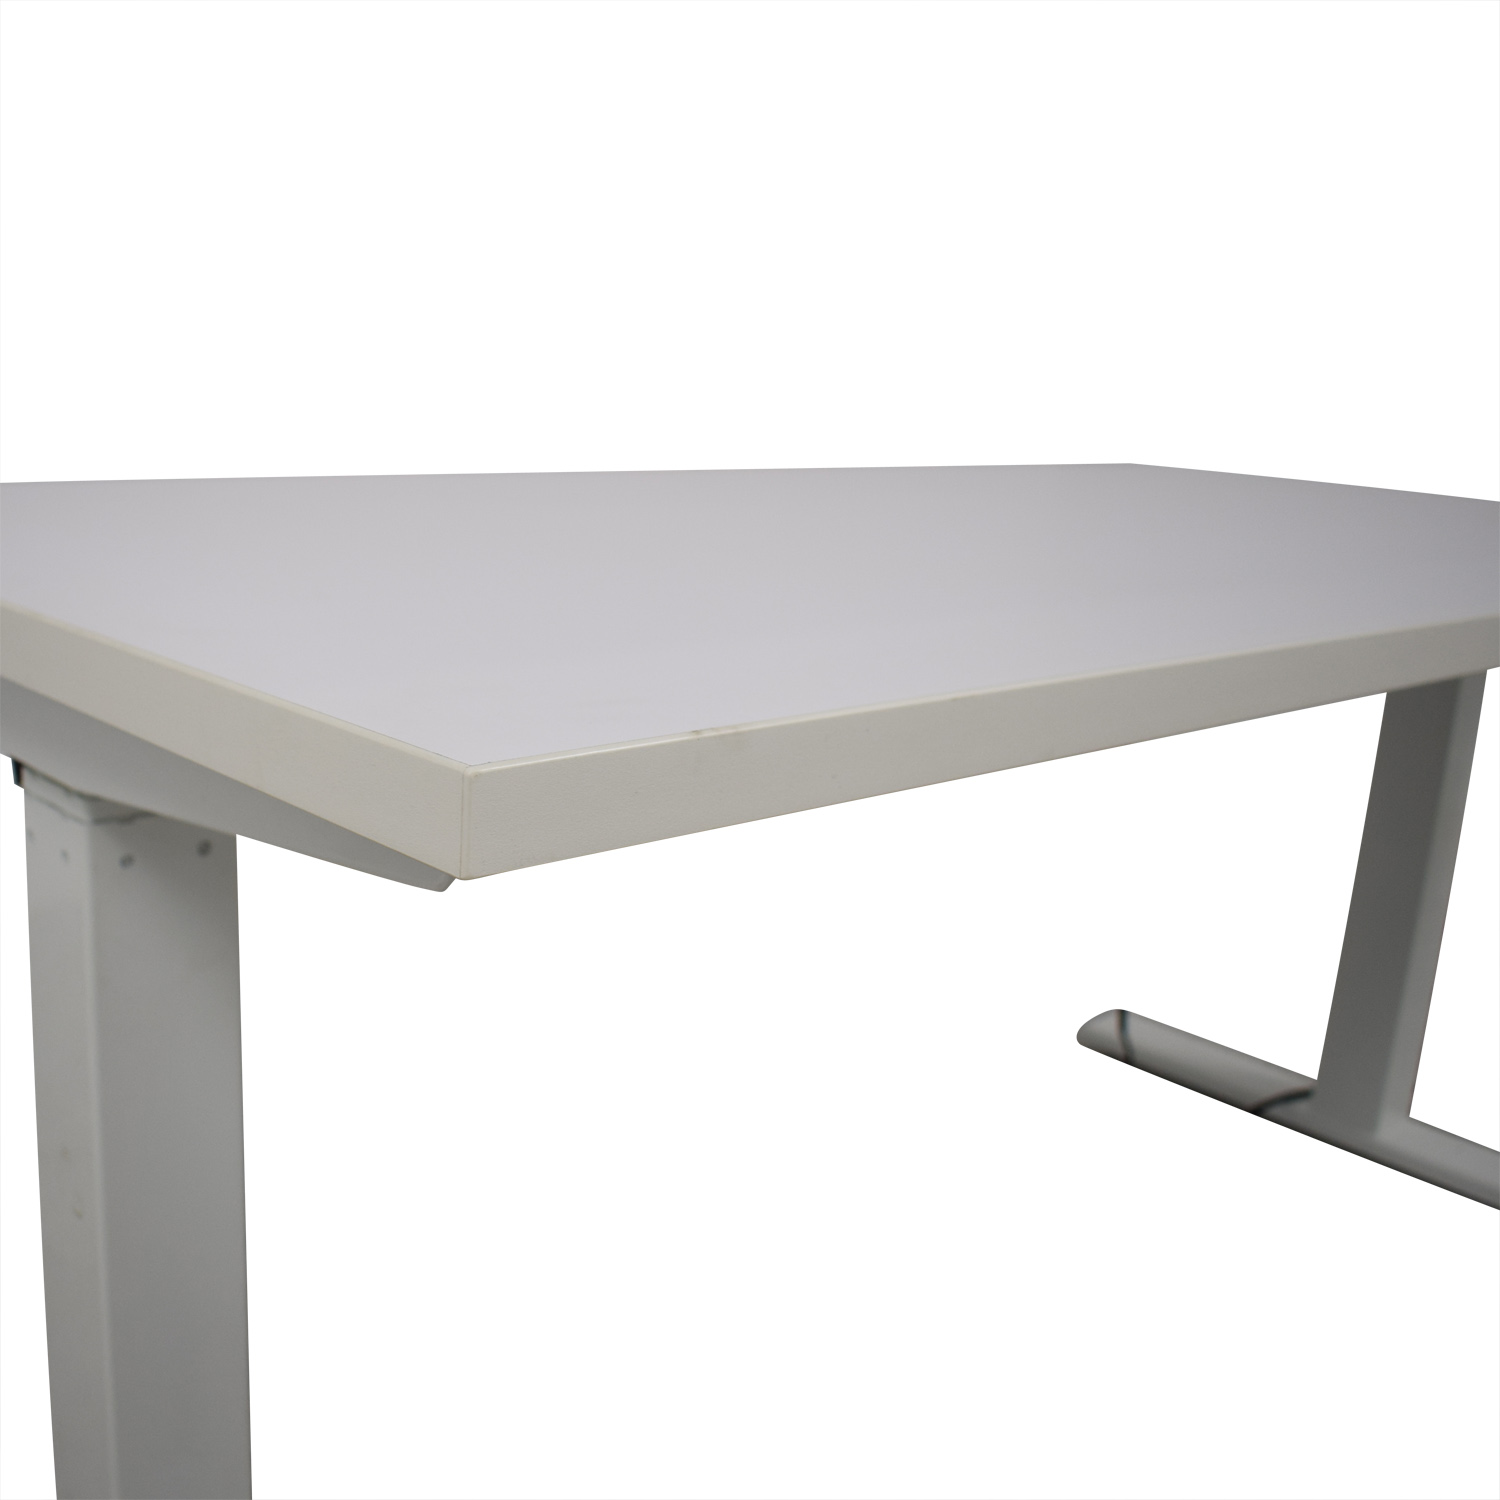 Poppin Poppin Series L Adjustable Height Single Desk white